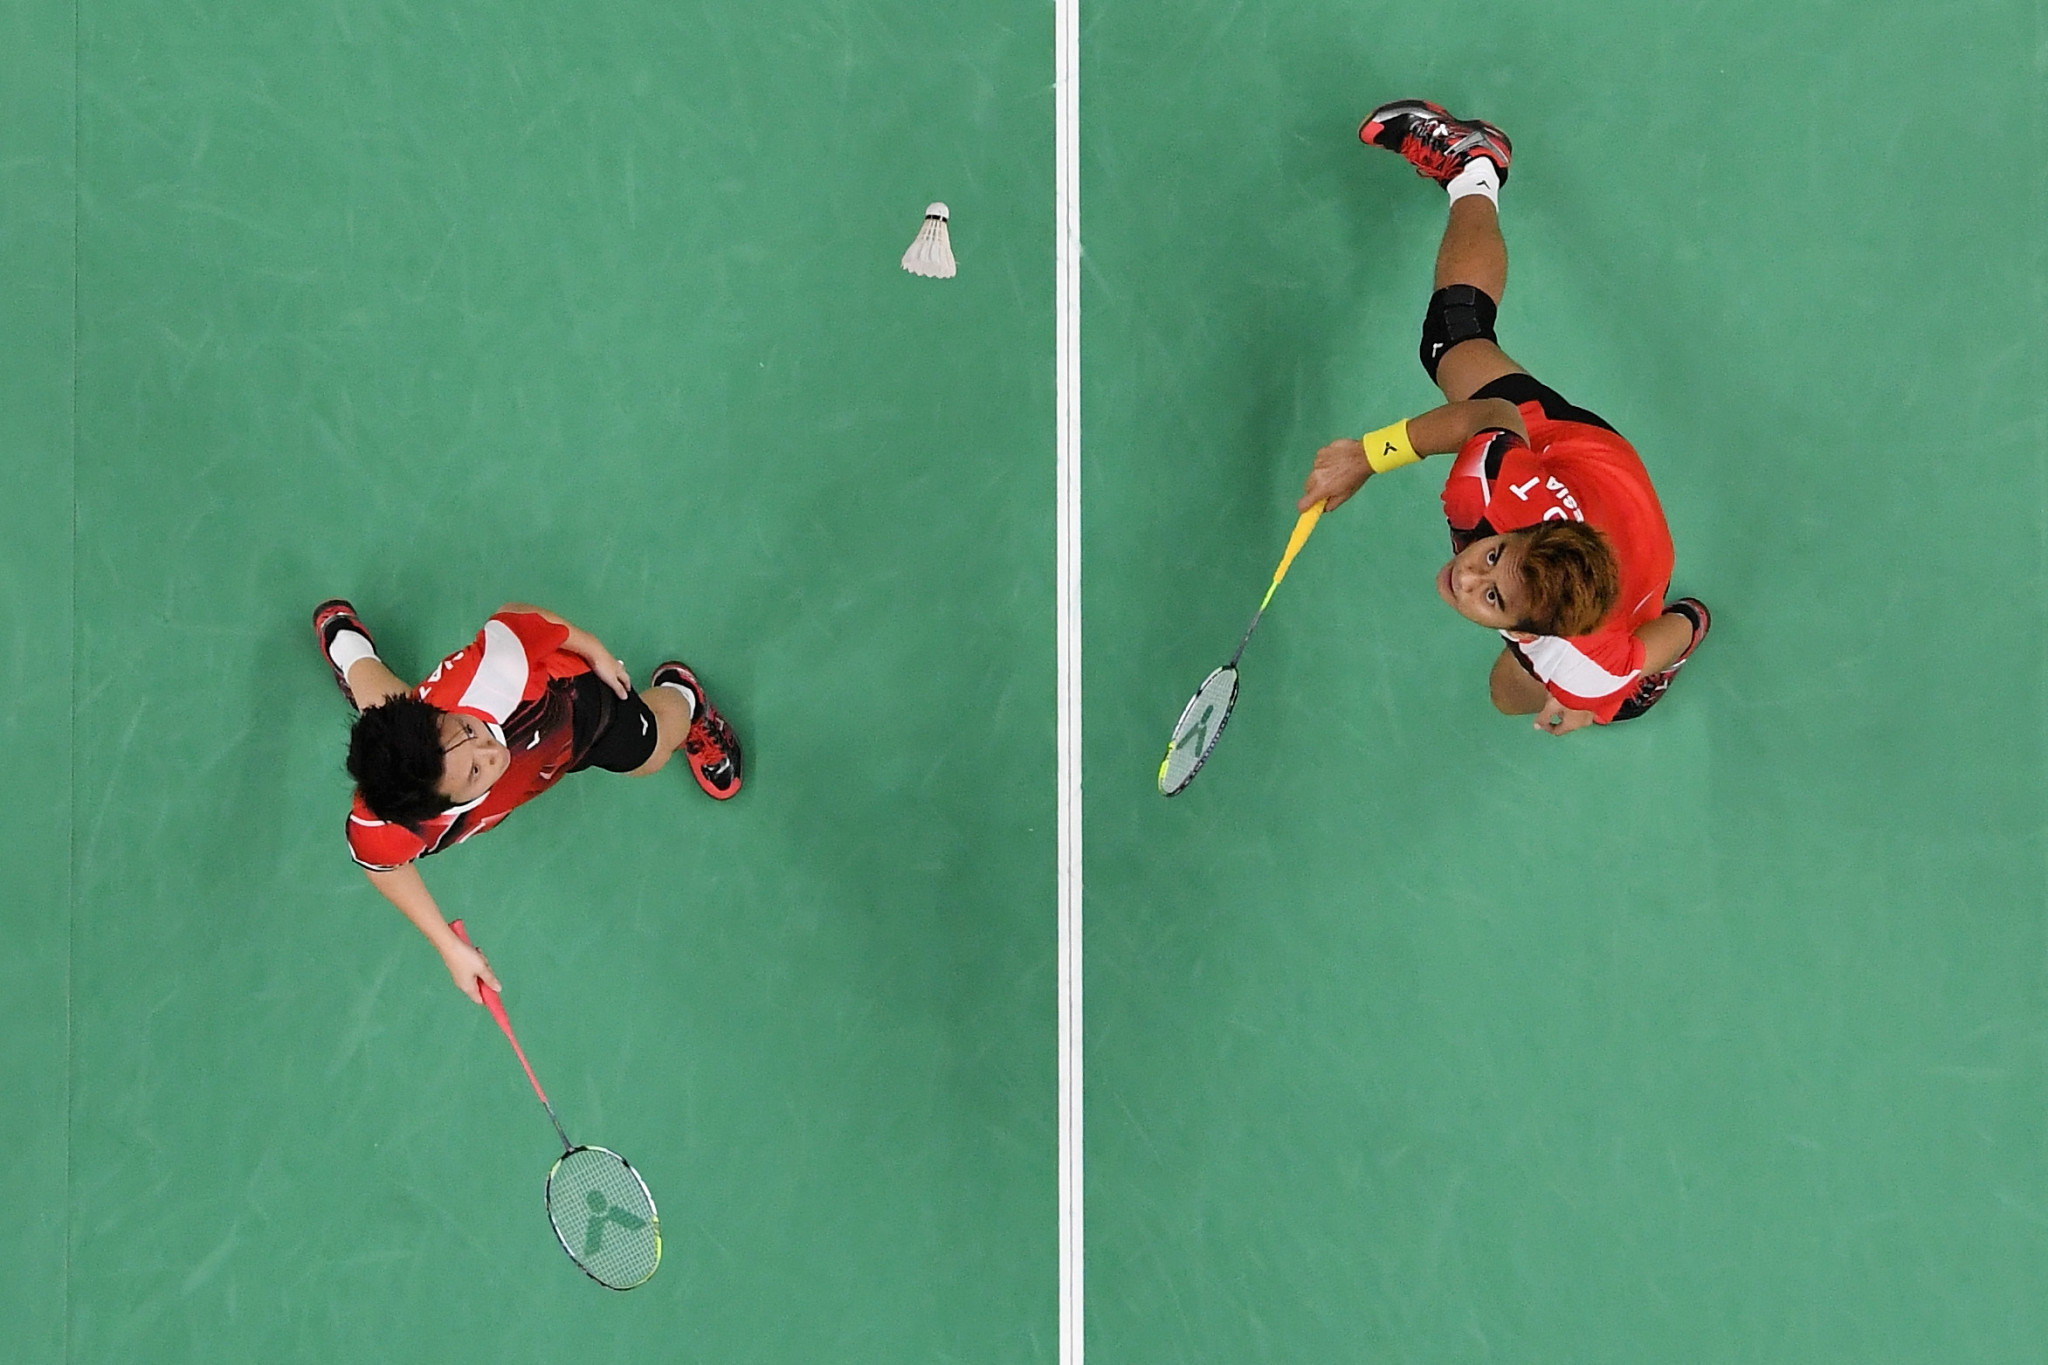 All seven of Indonesia's Olympic gold medals have come in badminton ©Getty Images